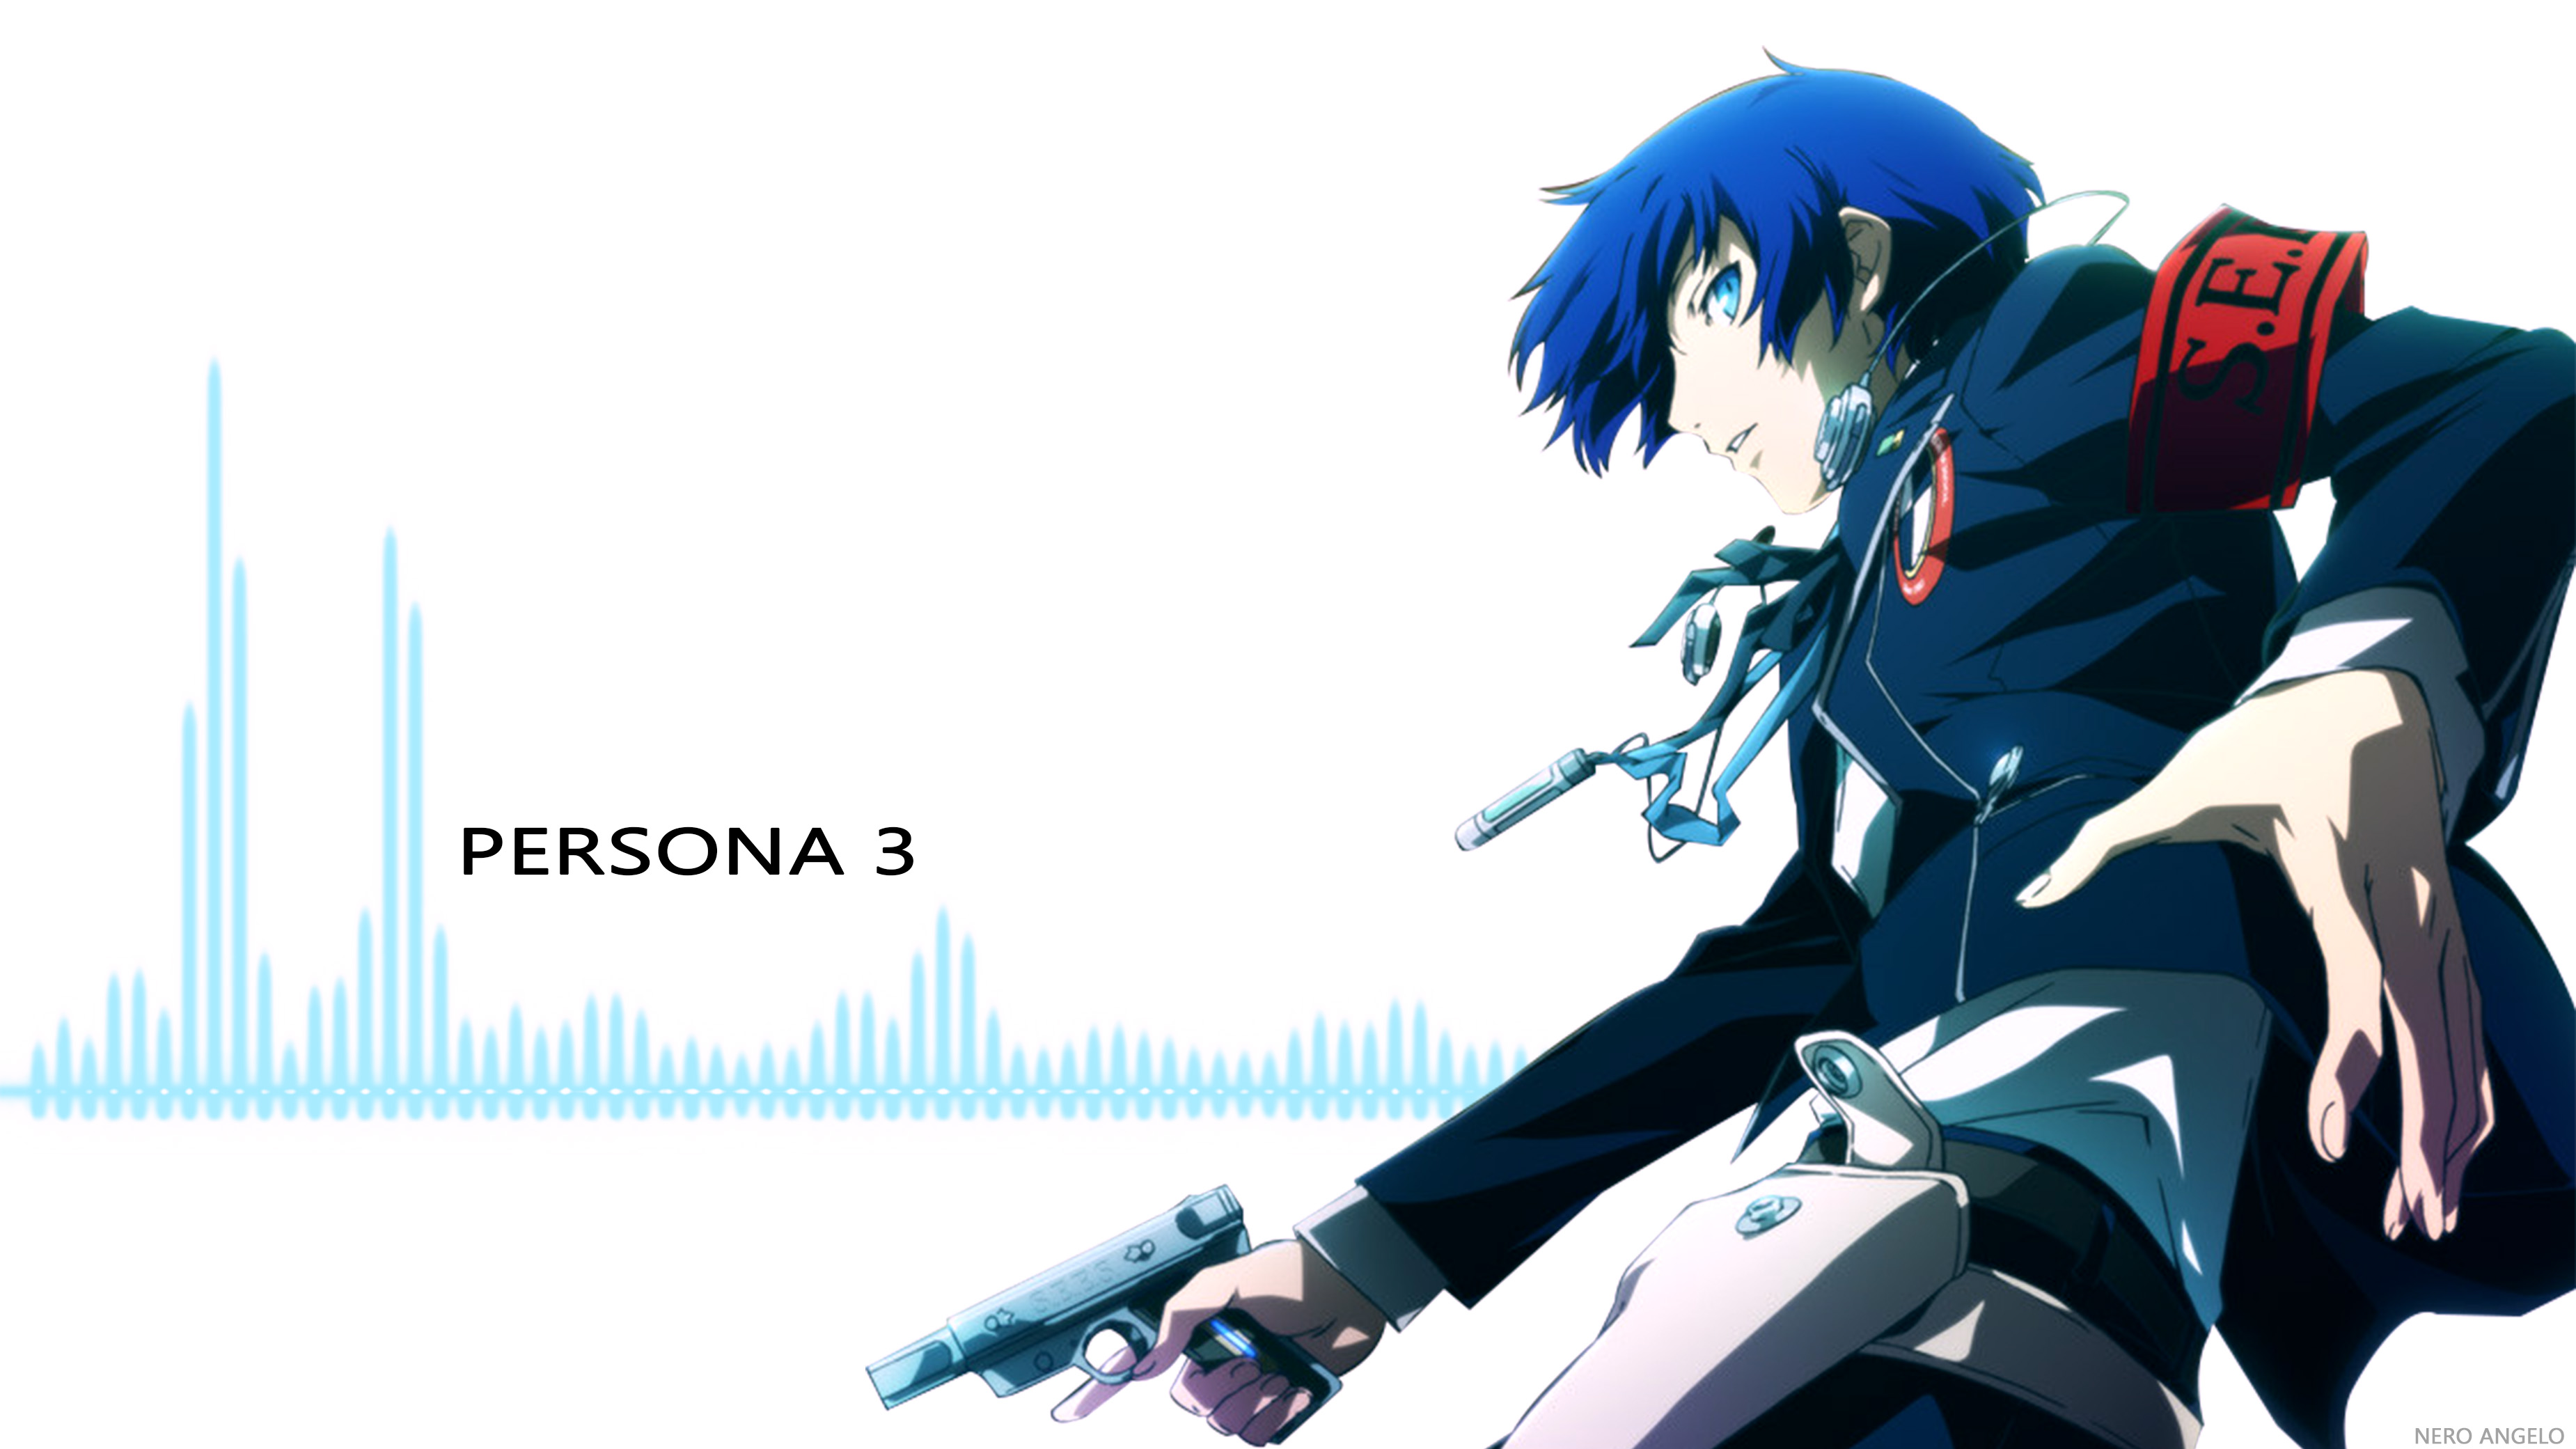 Persona3 Wallpaper 4k Thanatos: Persona 3 The Movie 1 Wallpaper HD Wallpaper